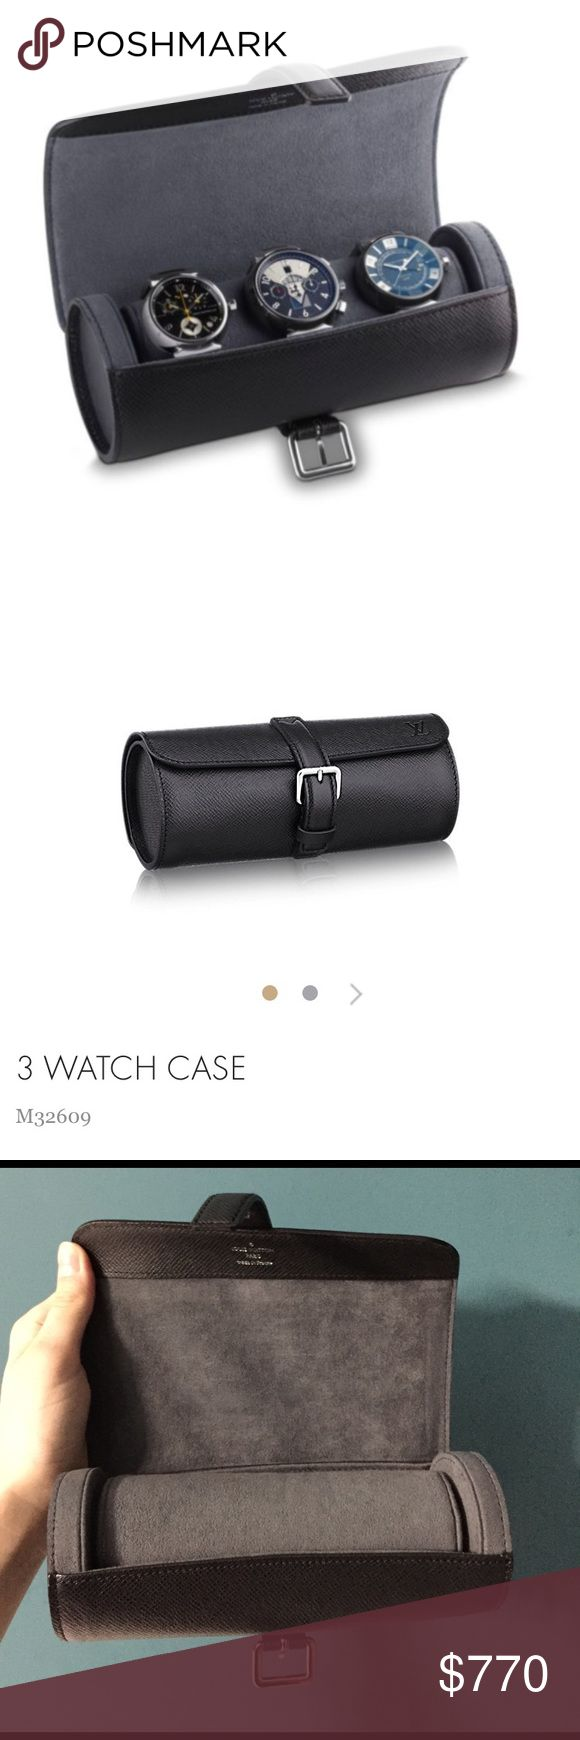 Louis Vuitton Taiga Leather 3 Watch Travel Case Authentic Louis Vuitton watch travel case. A true timeless luxury piece. Excellent condition, like new. Only one tiny scratch as shown in picture.                   From Louis Vuitton --- The 3 Watch Case in